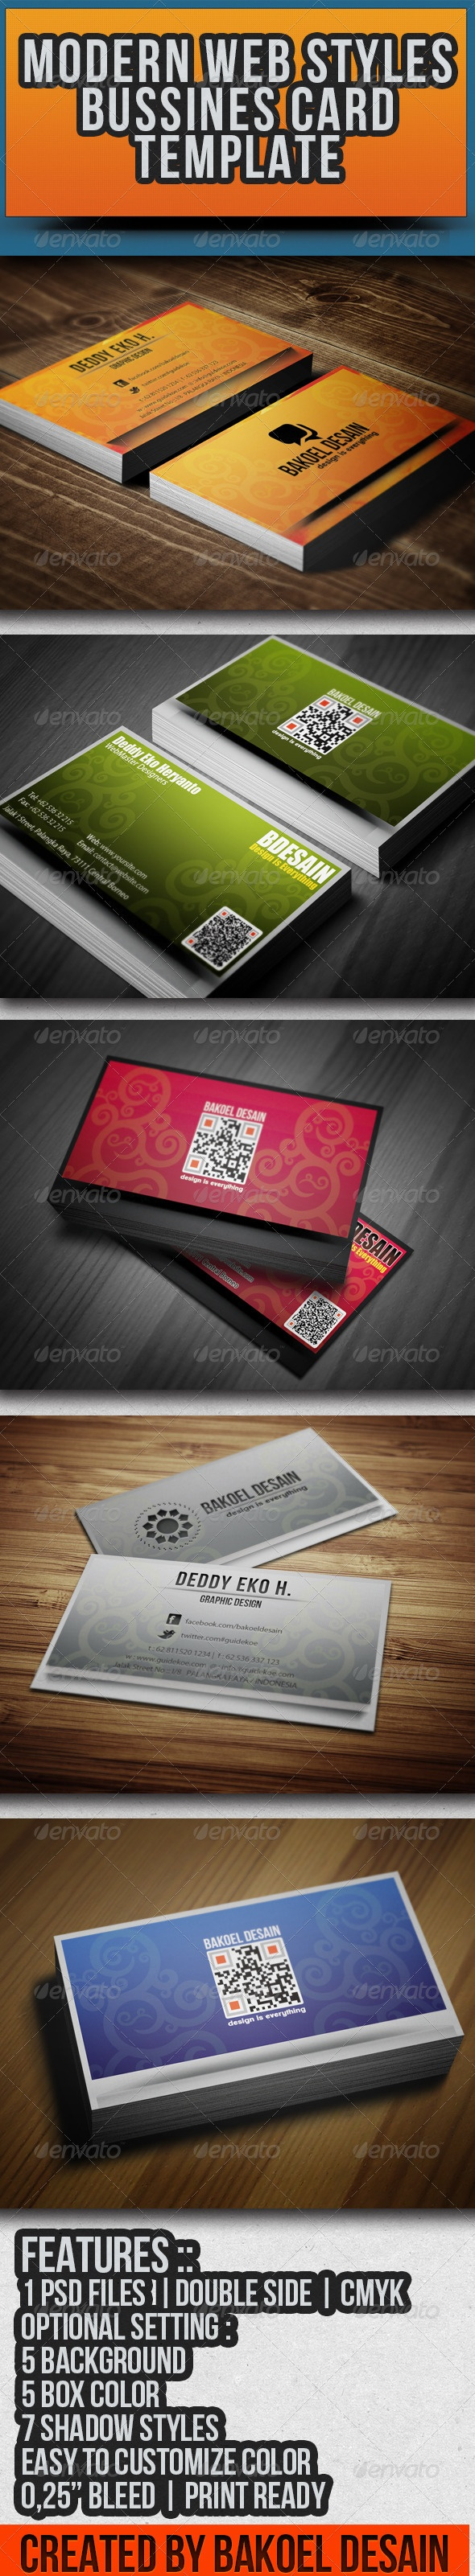 Modern Web Styles Bussines Card